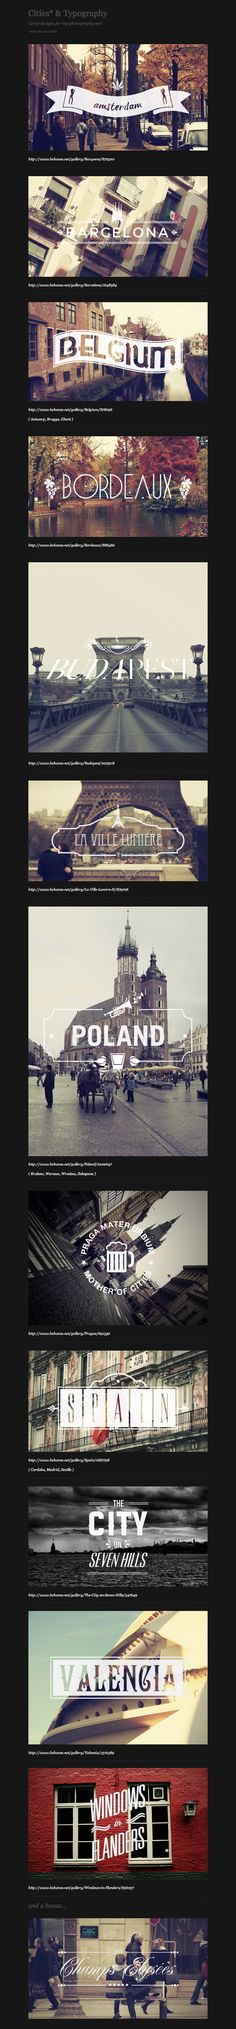 http://www.typographyserved.com/gallery/Cities-Typography/2924563